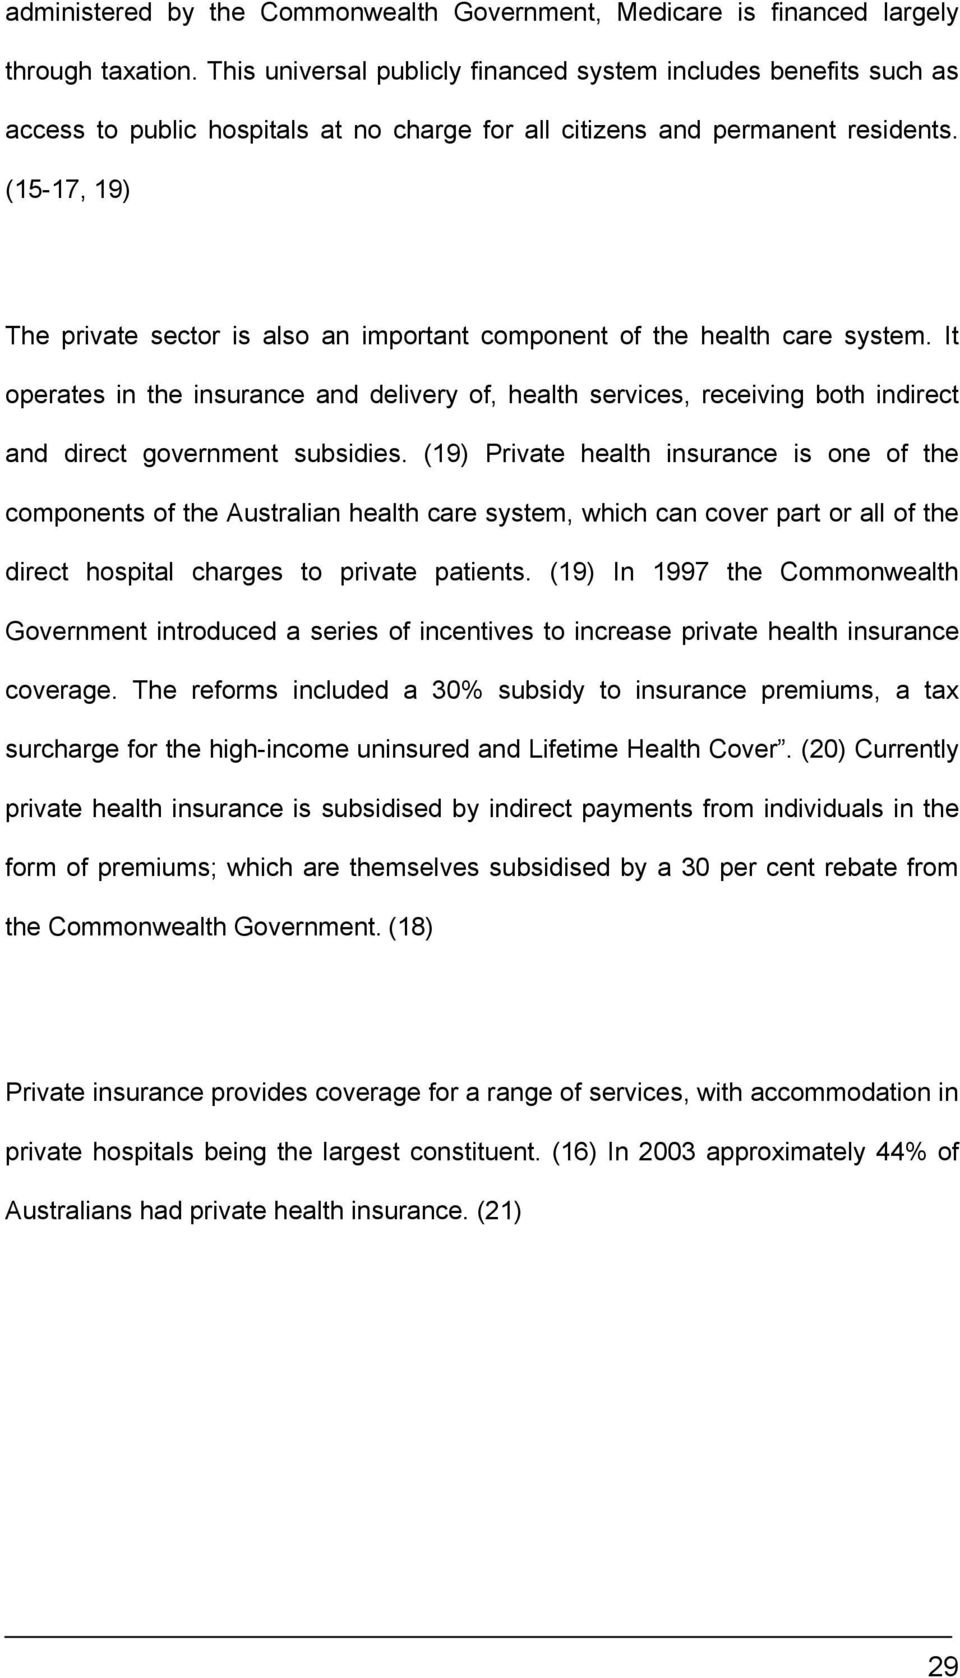 (15-17, 19) The private sector is also an important component of the health care system.